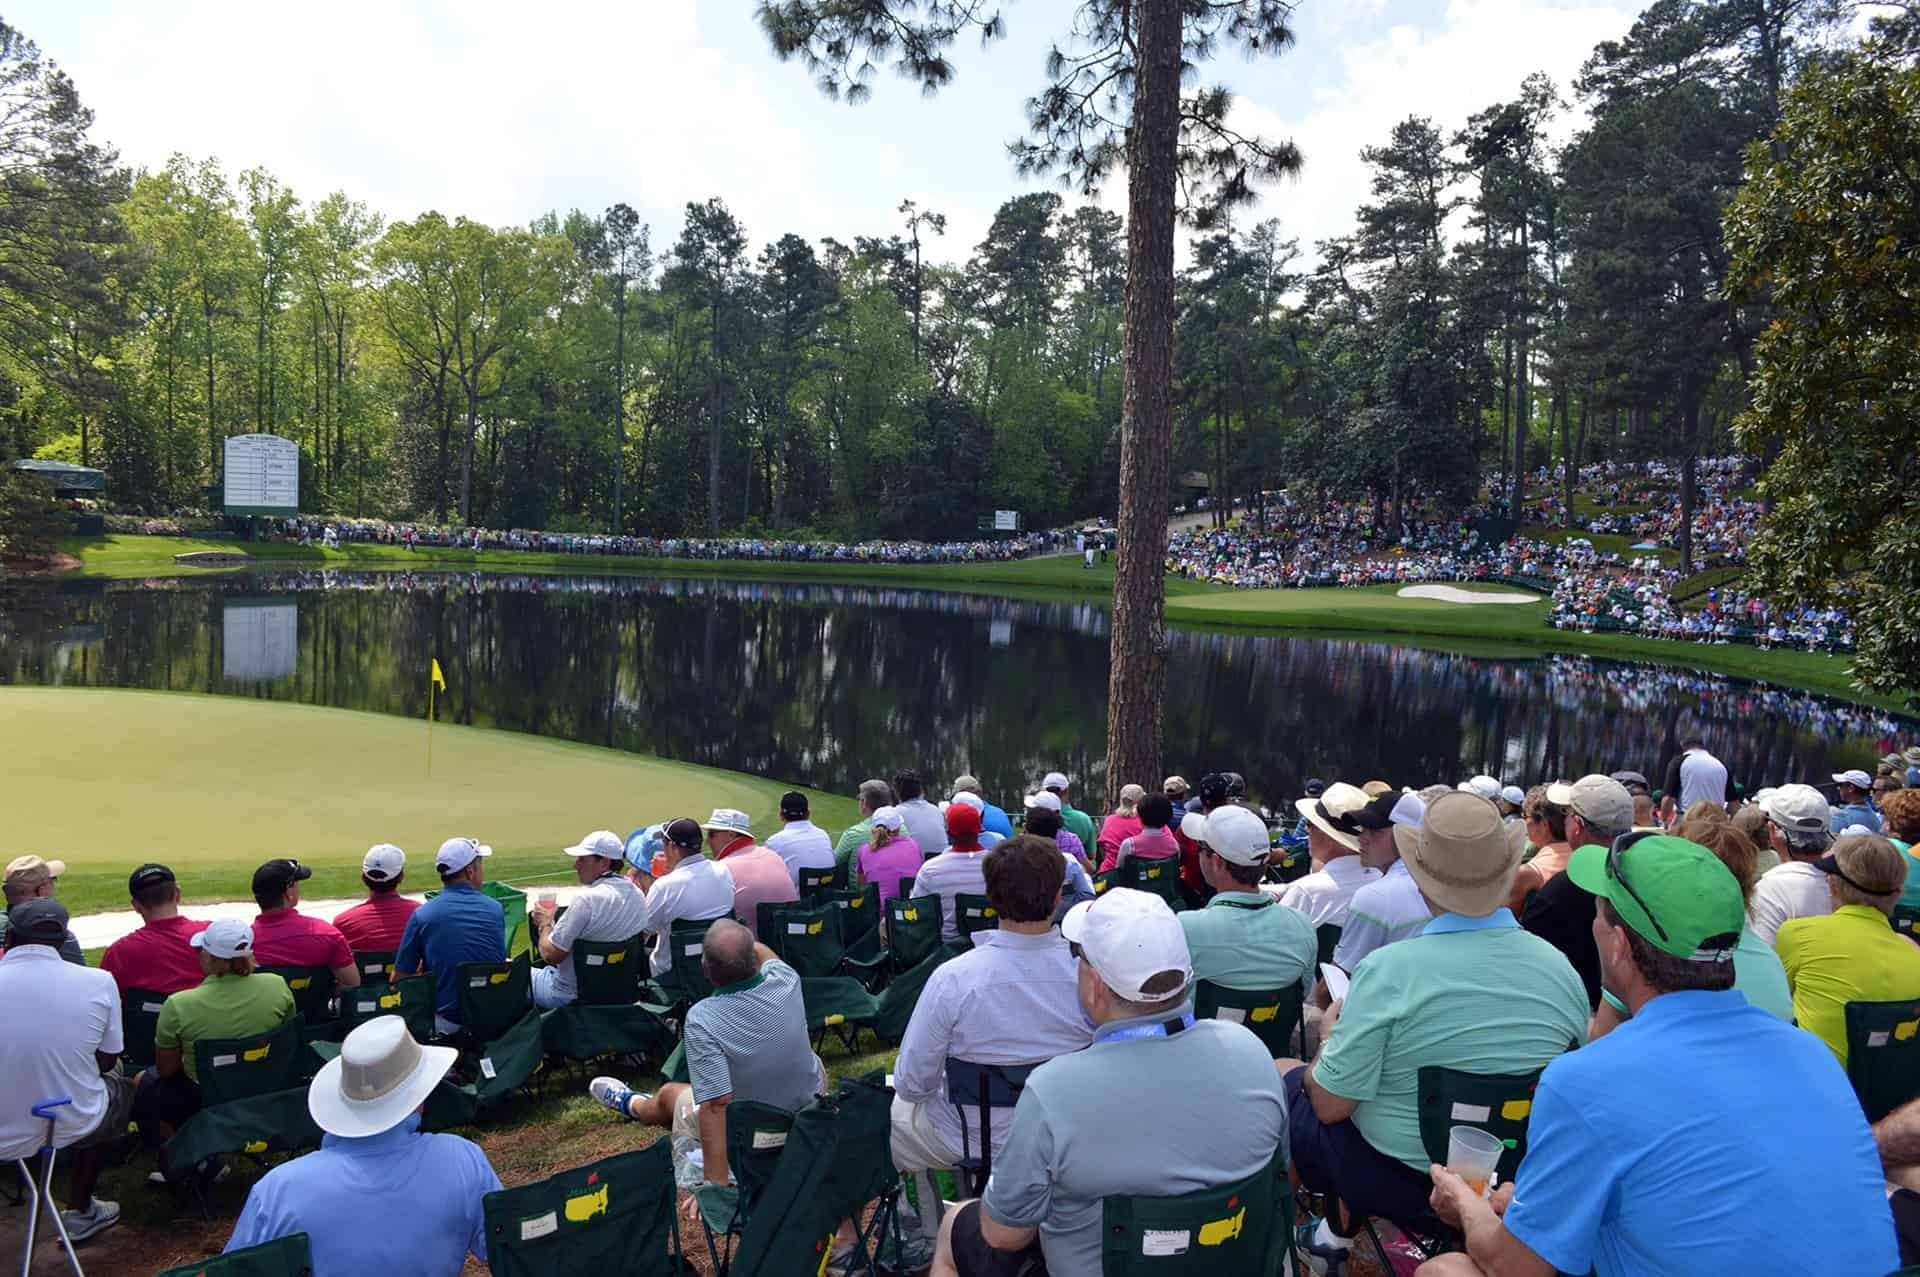 Fan view from stands of The Masters par 3 contest.